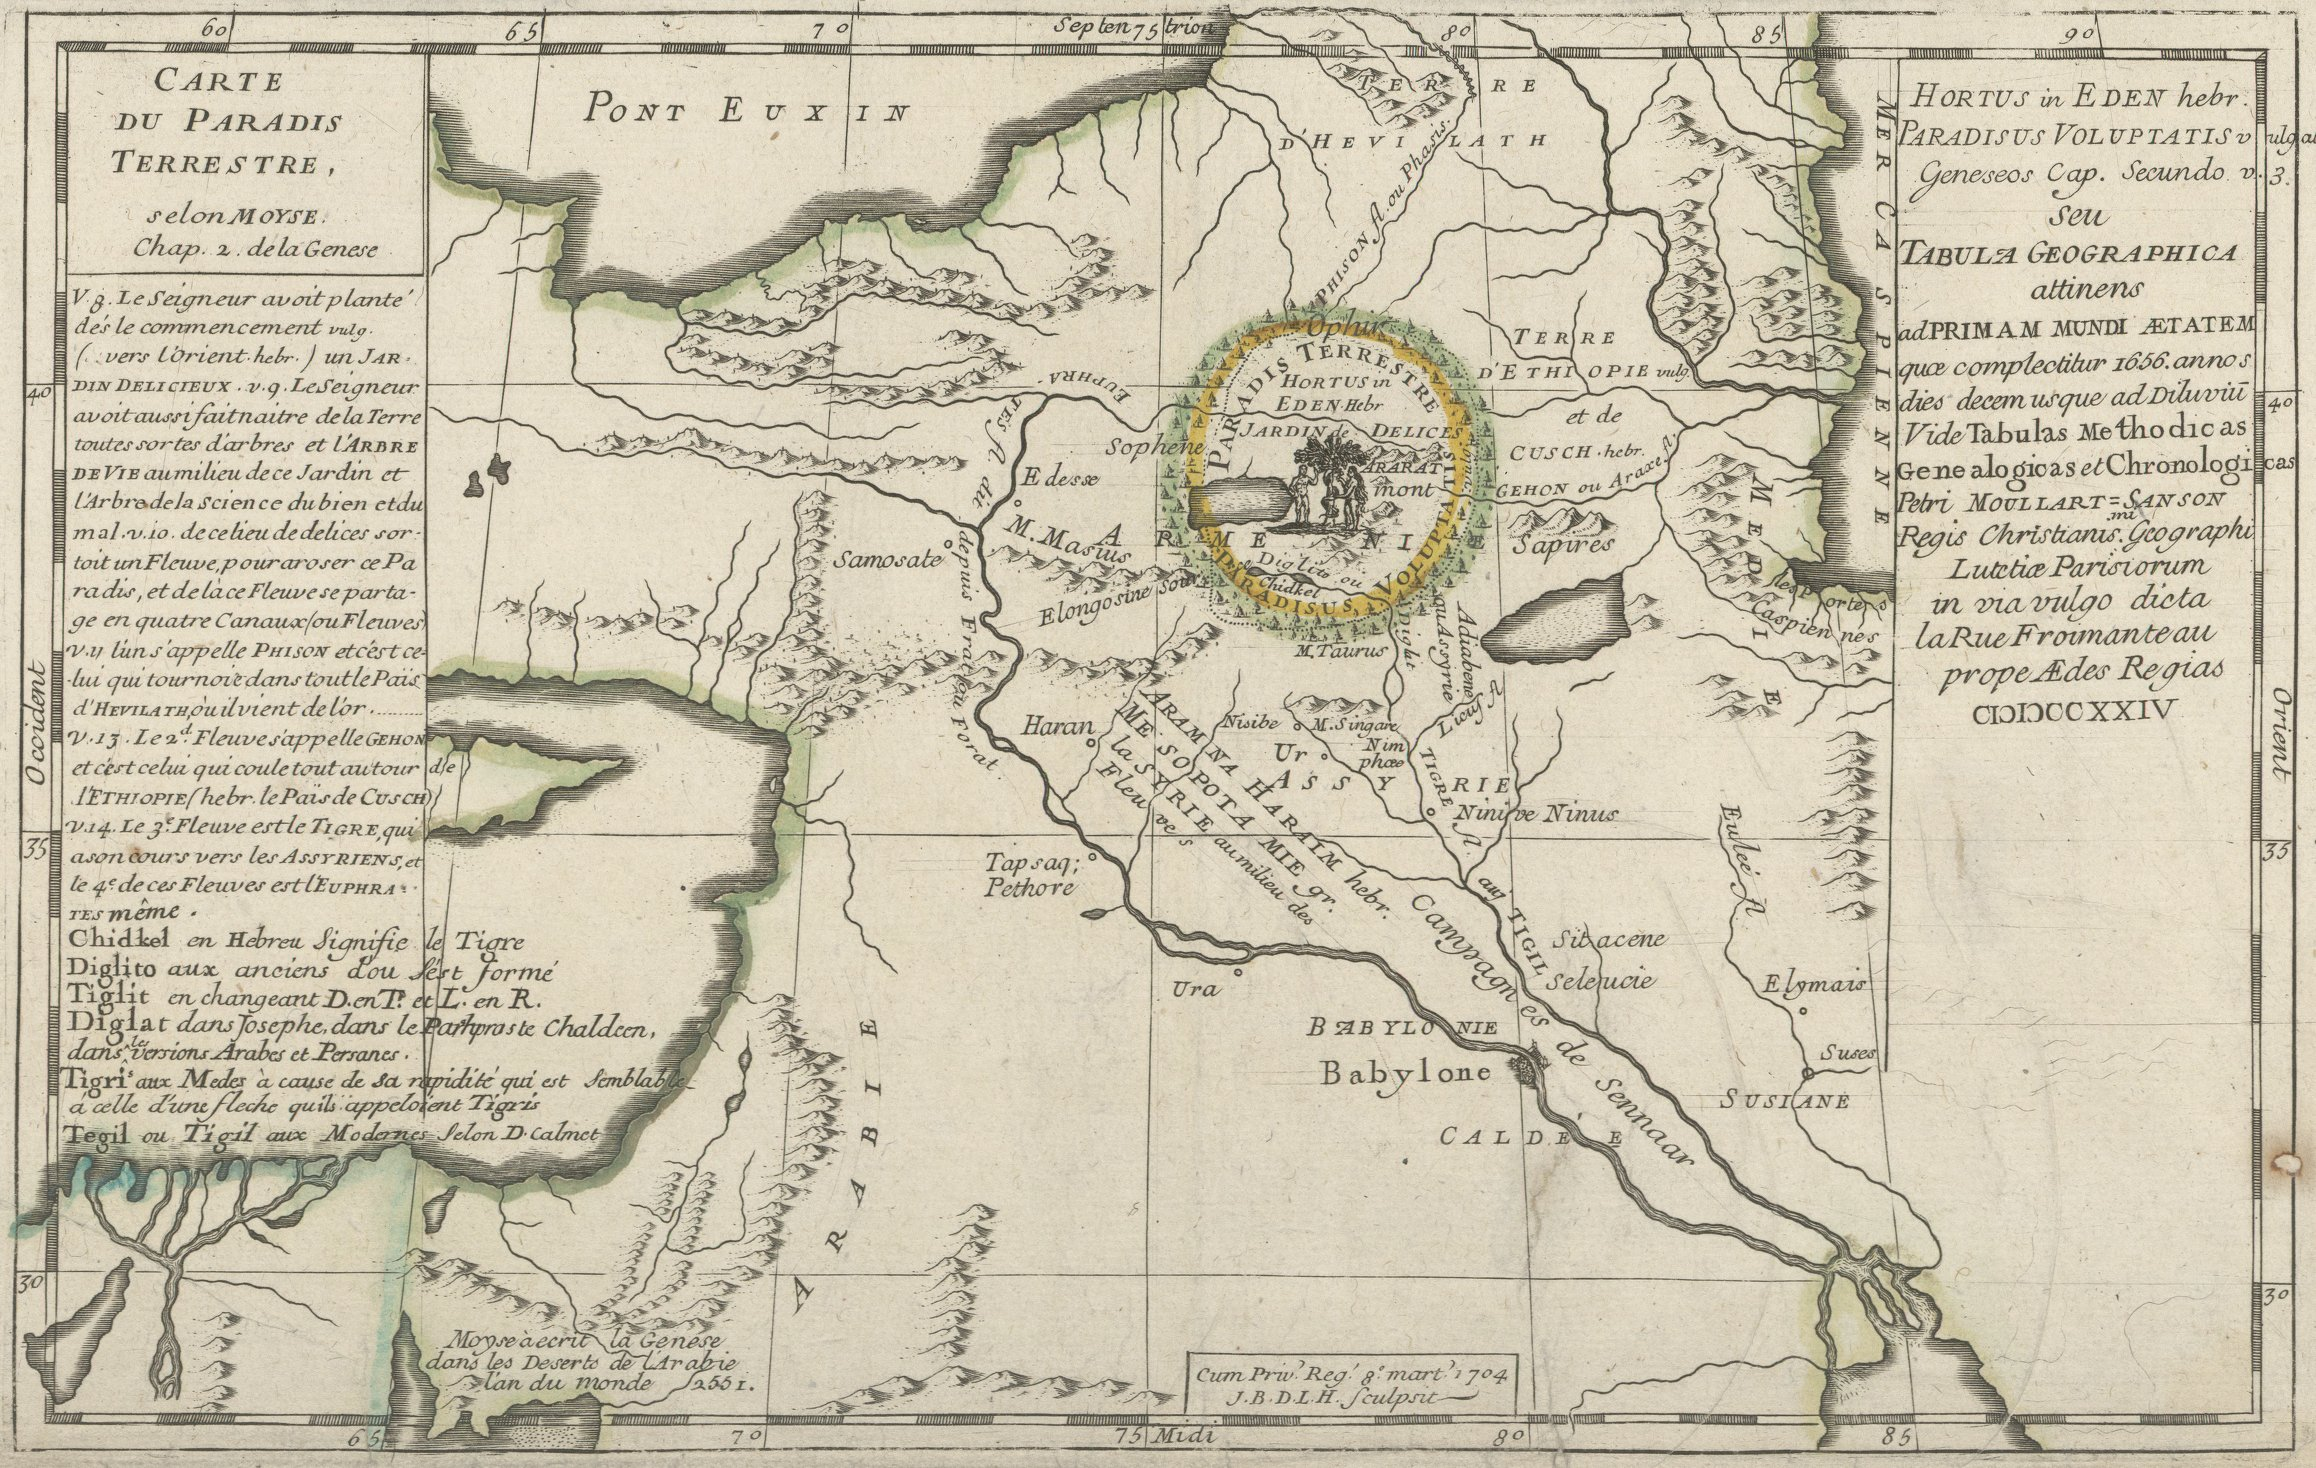 Map of the Earthly Paradise by Moyse, 1724 Source: Bibliothèque nationale de France